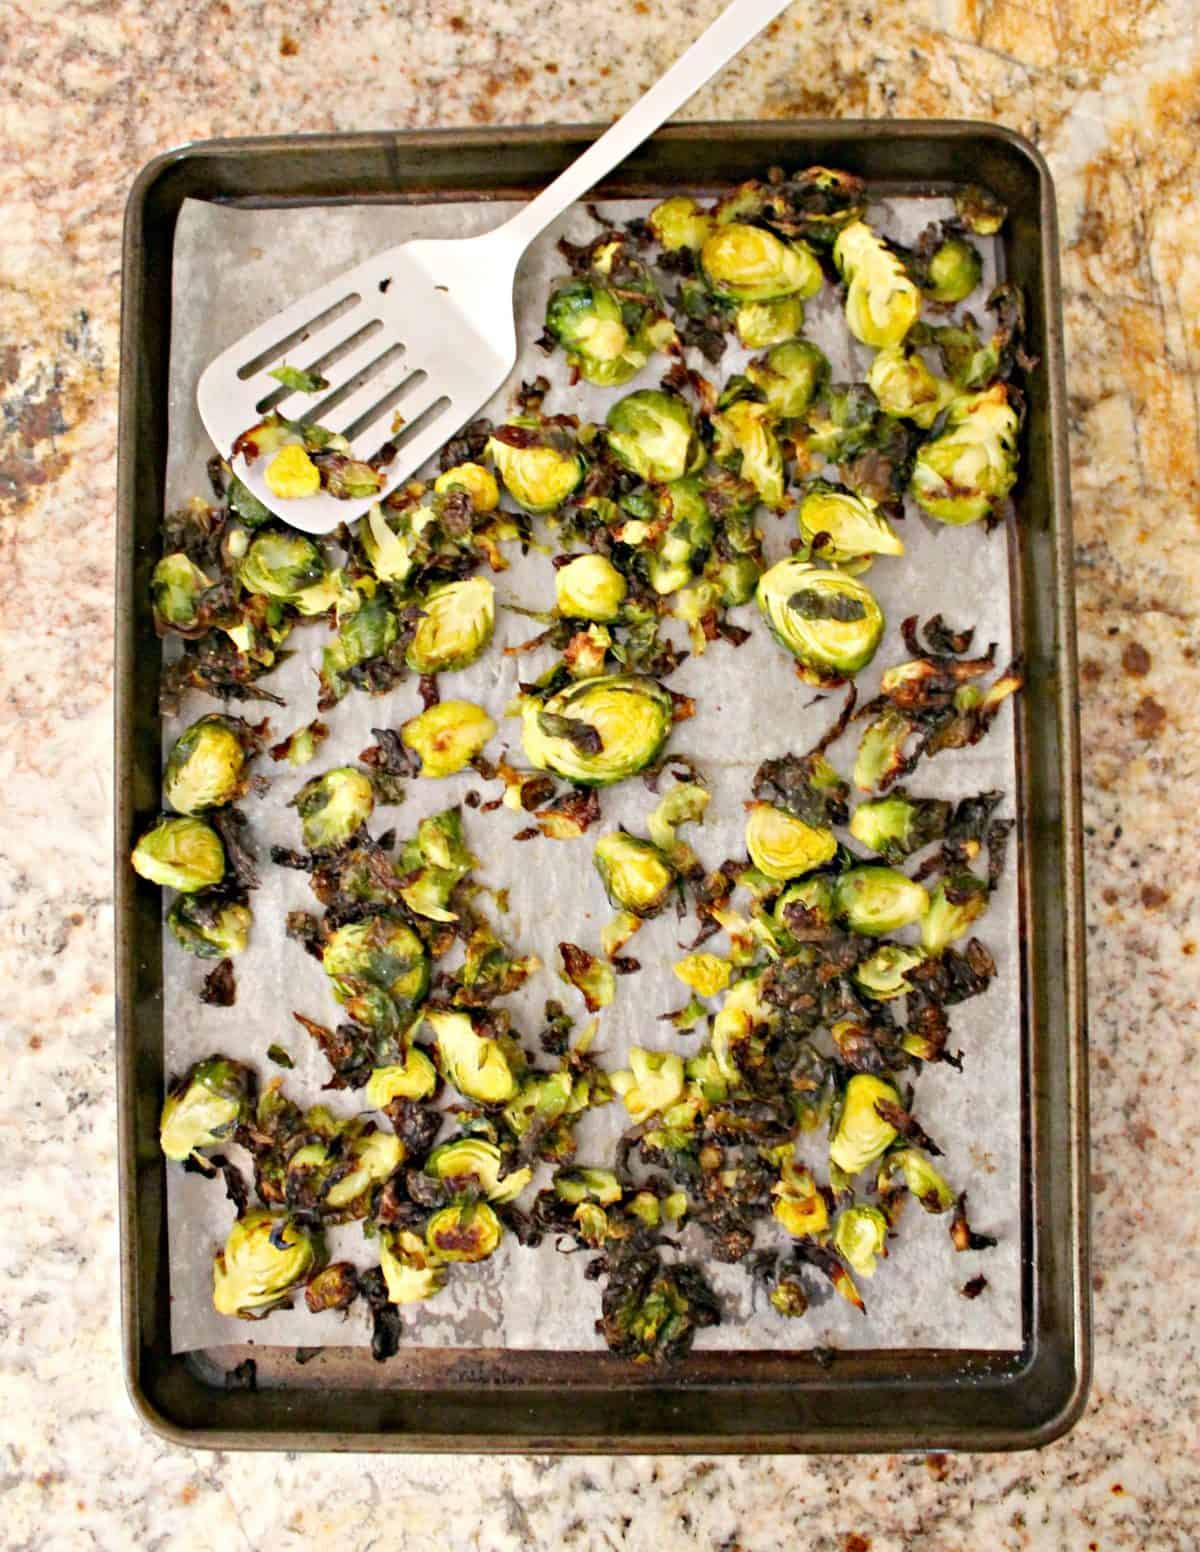 Overhead shot of a pan of roasted Brussels sprouts on a kitchen counter top.